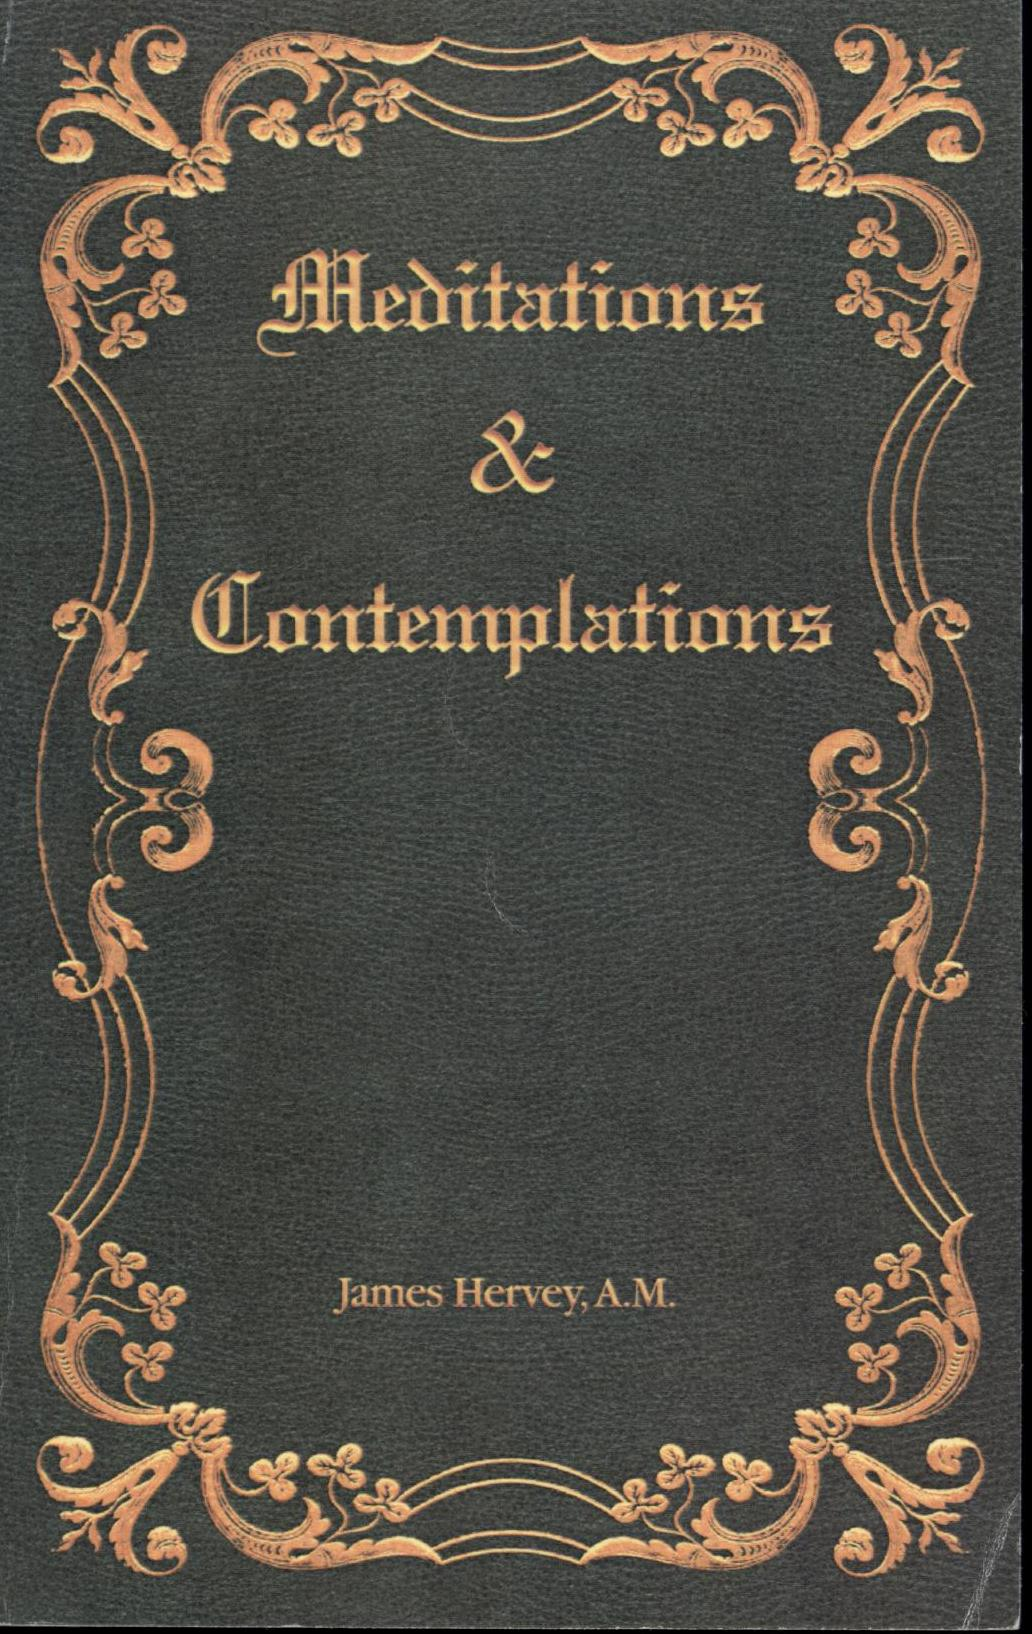 Image for Meditations and Compilations